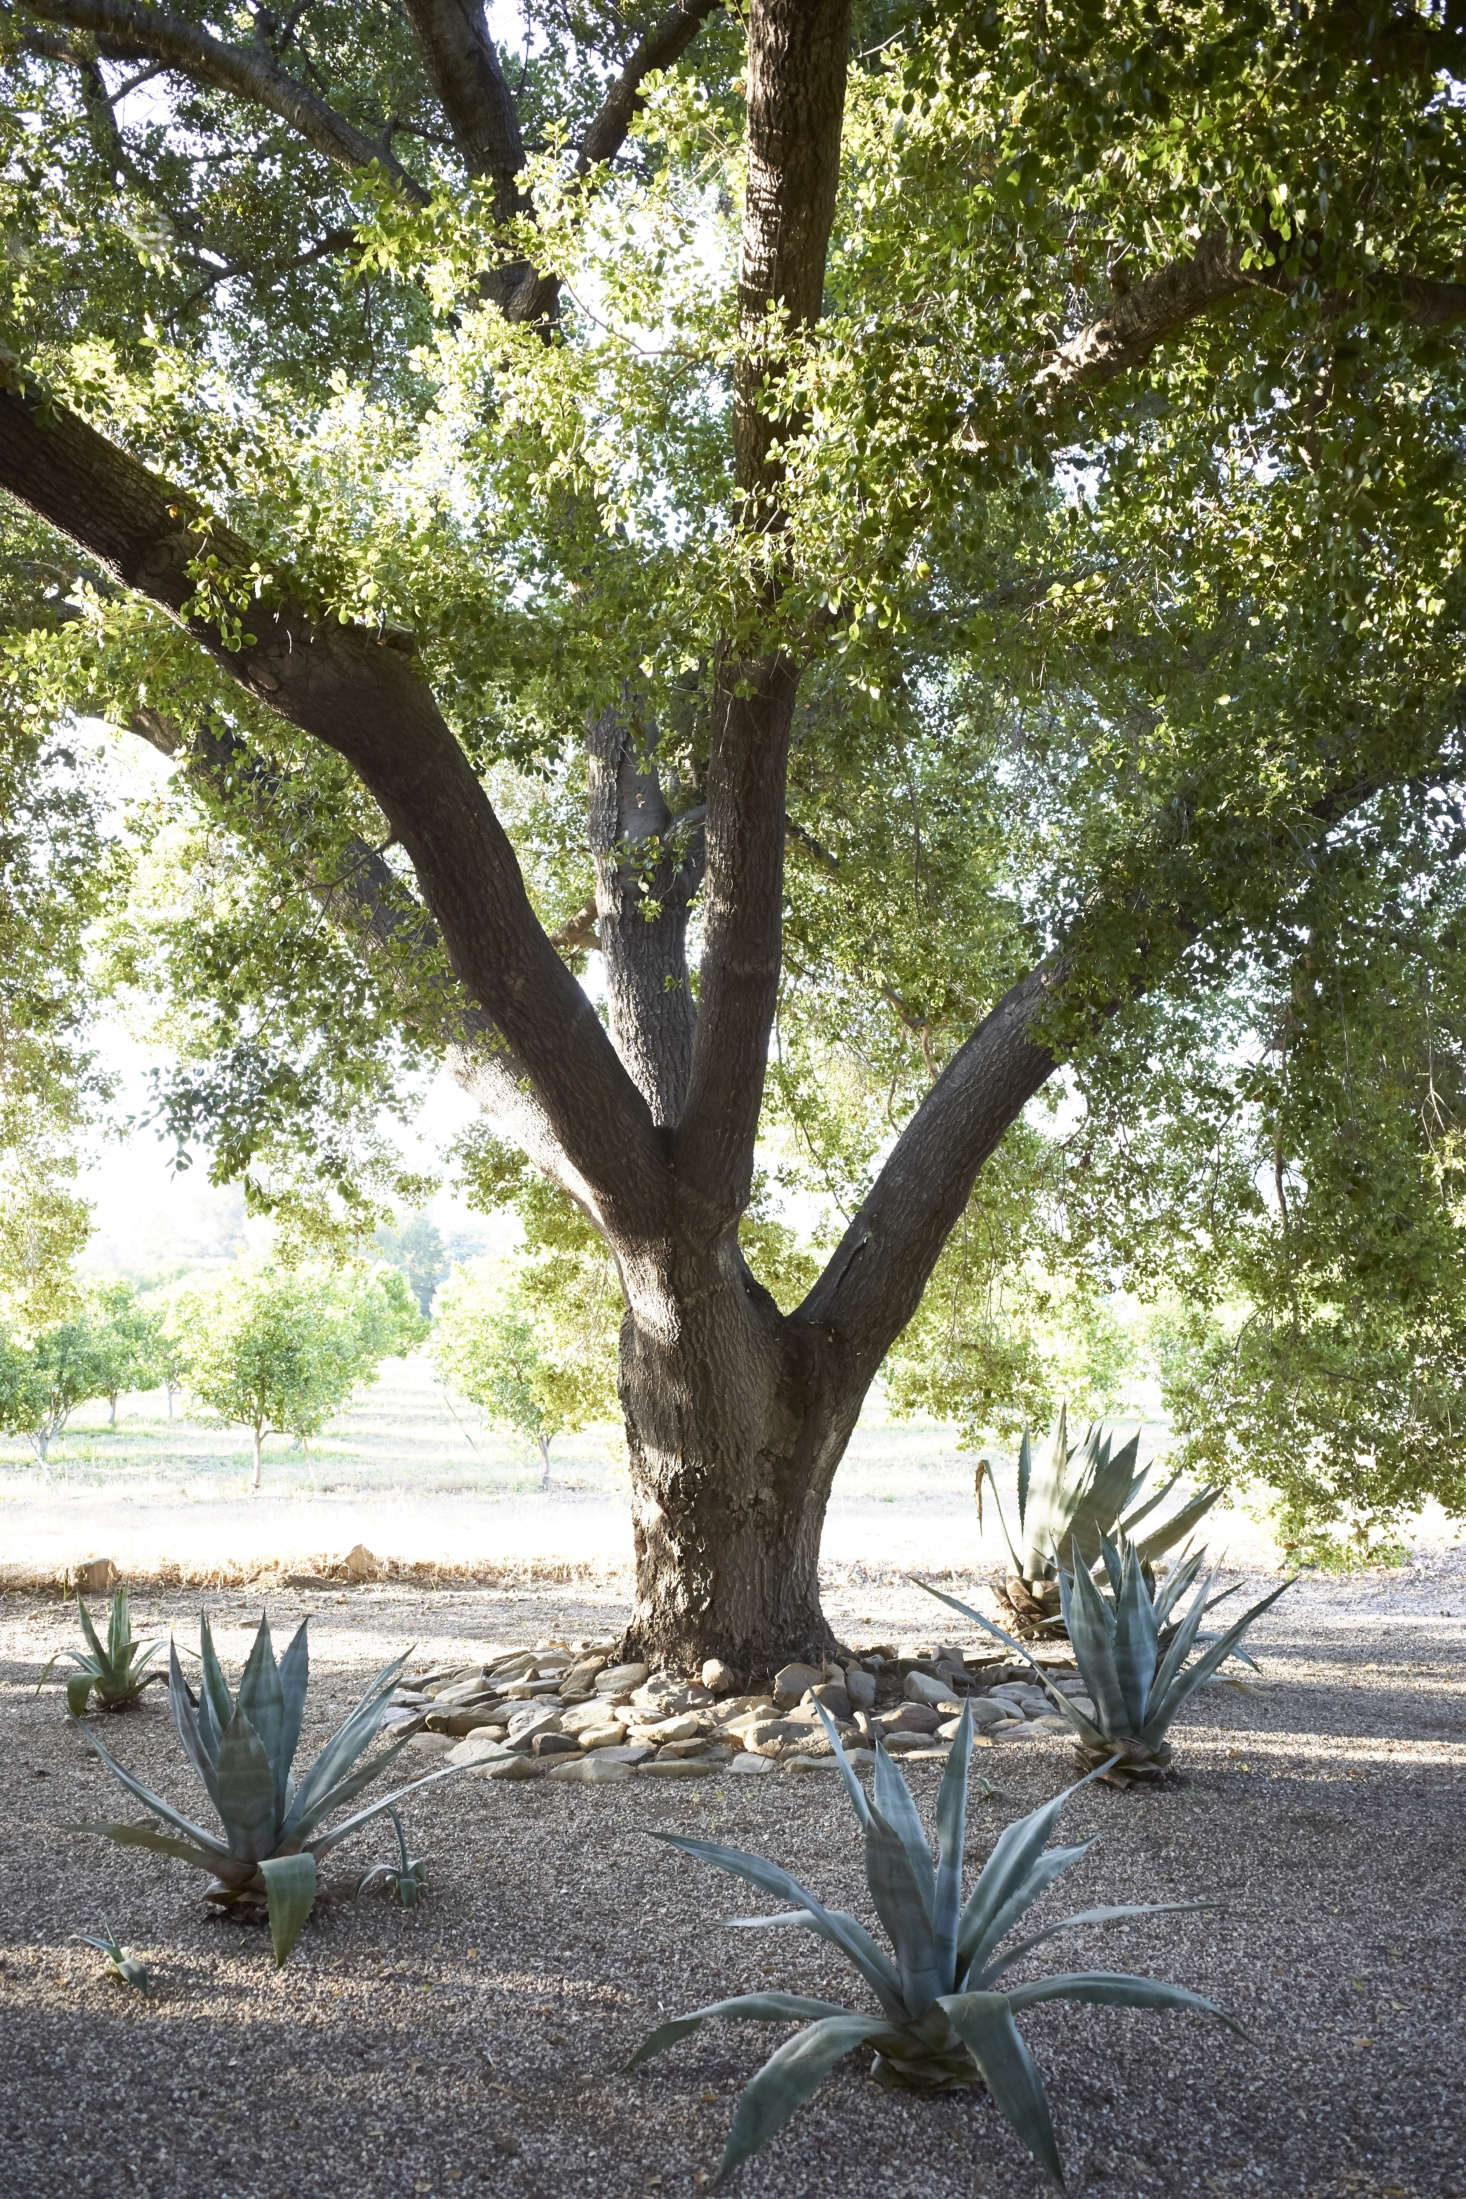 An old tree provides respite from the summer heat.